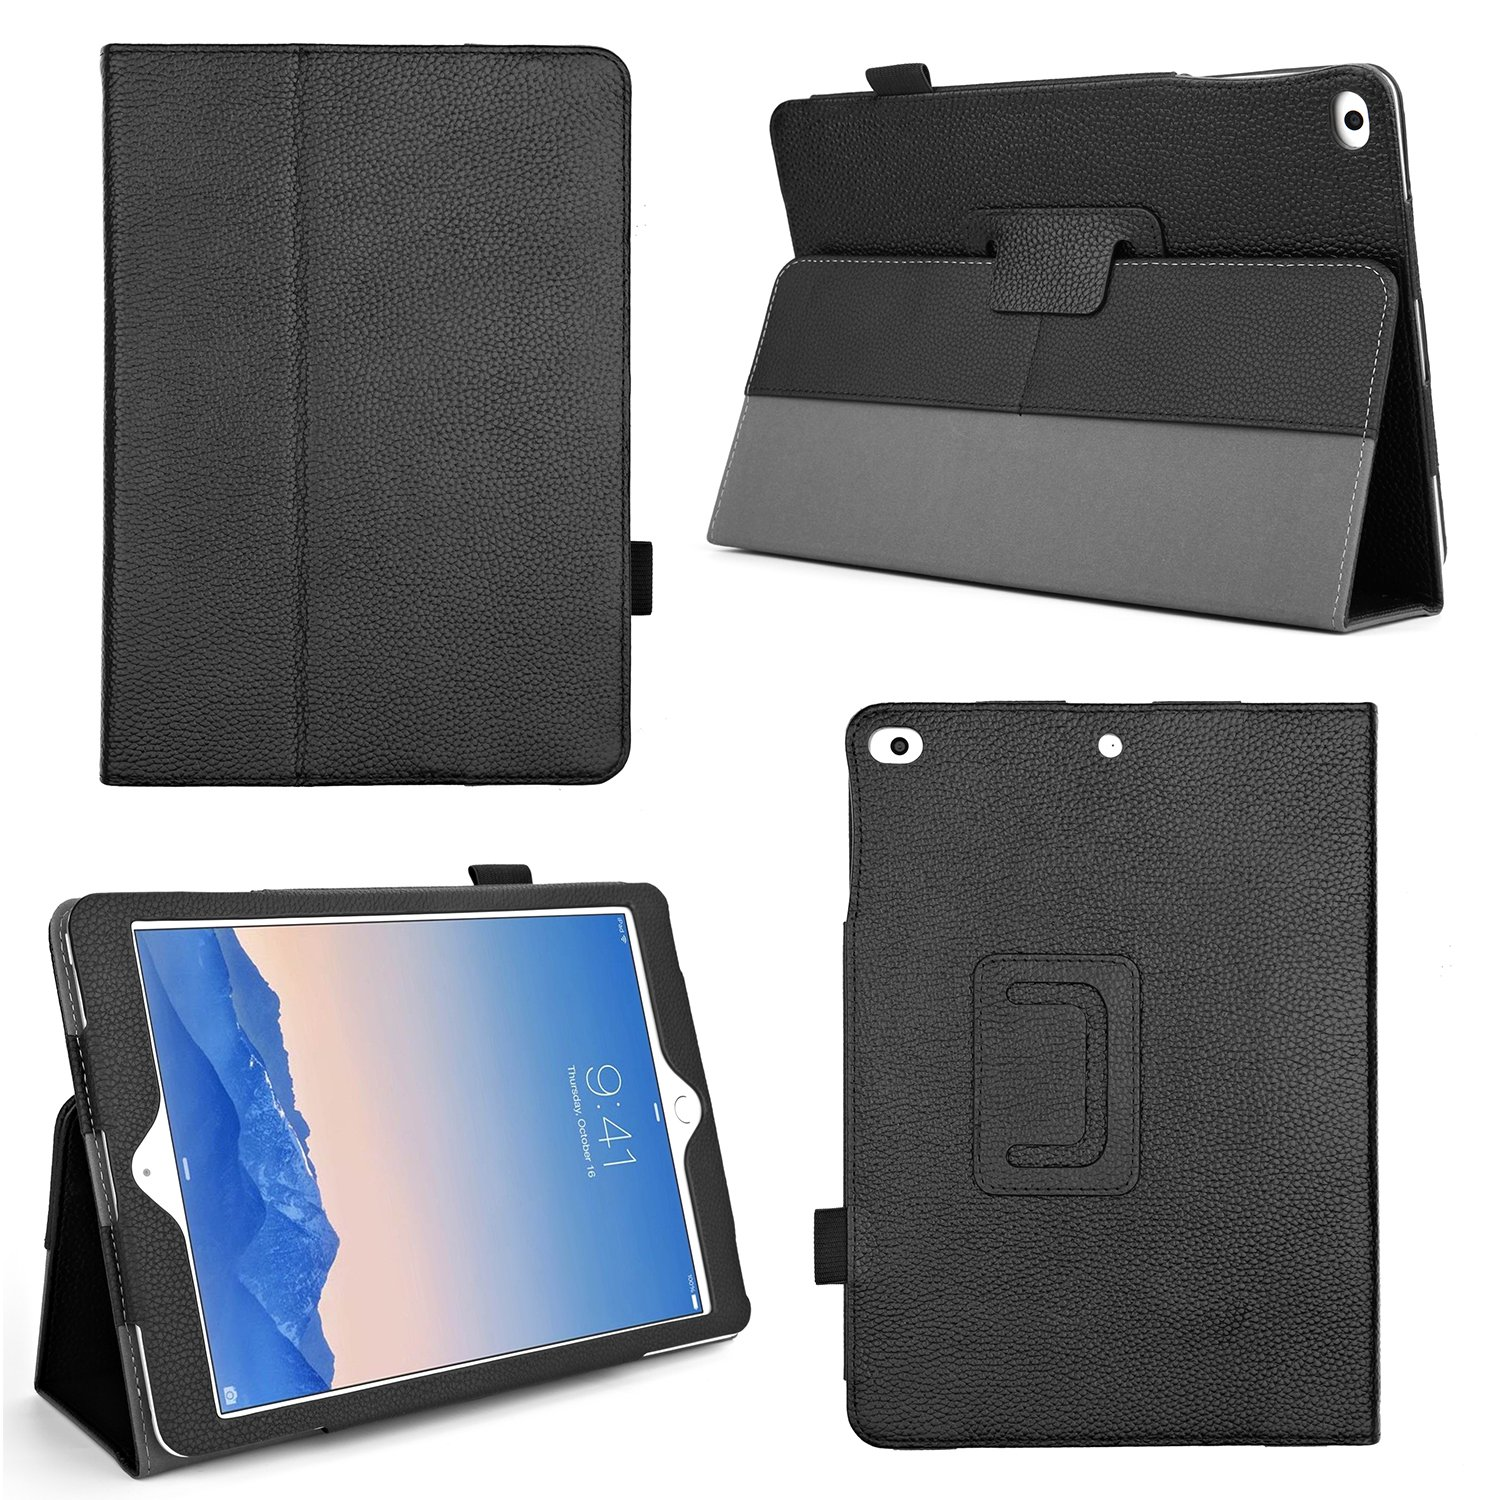 Bear Motion BMIPADAIRLLBK for New iPad 2017 and iPad Air 1, Genuine Cowhide Leather Case with Hand Strap, Built-in Stand and Auto Wake/Sleep Function for Apple iPad Air 1 and New iPad 2017 Model - Black